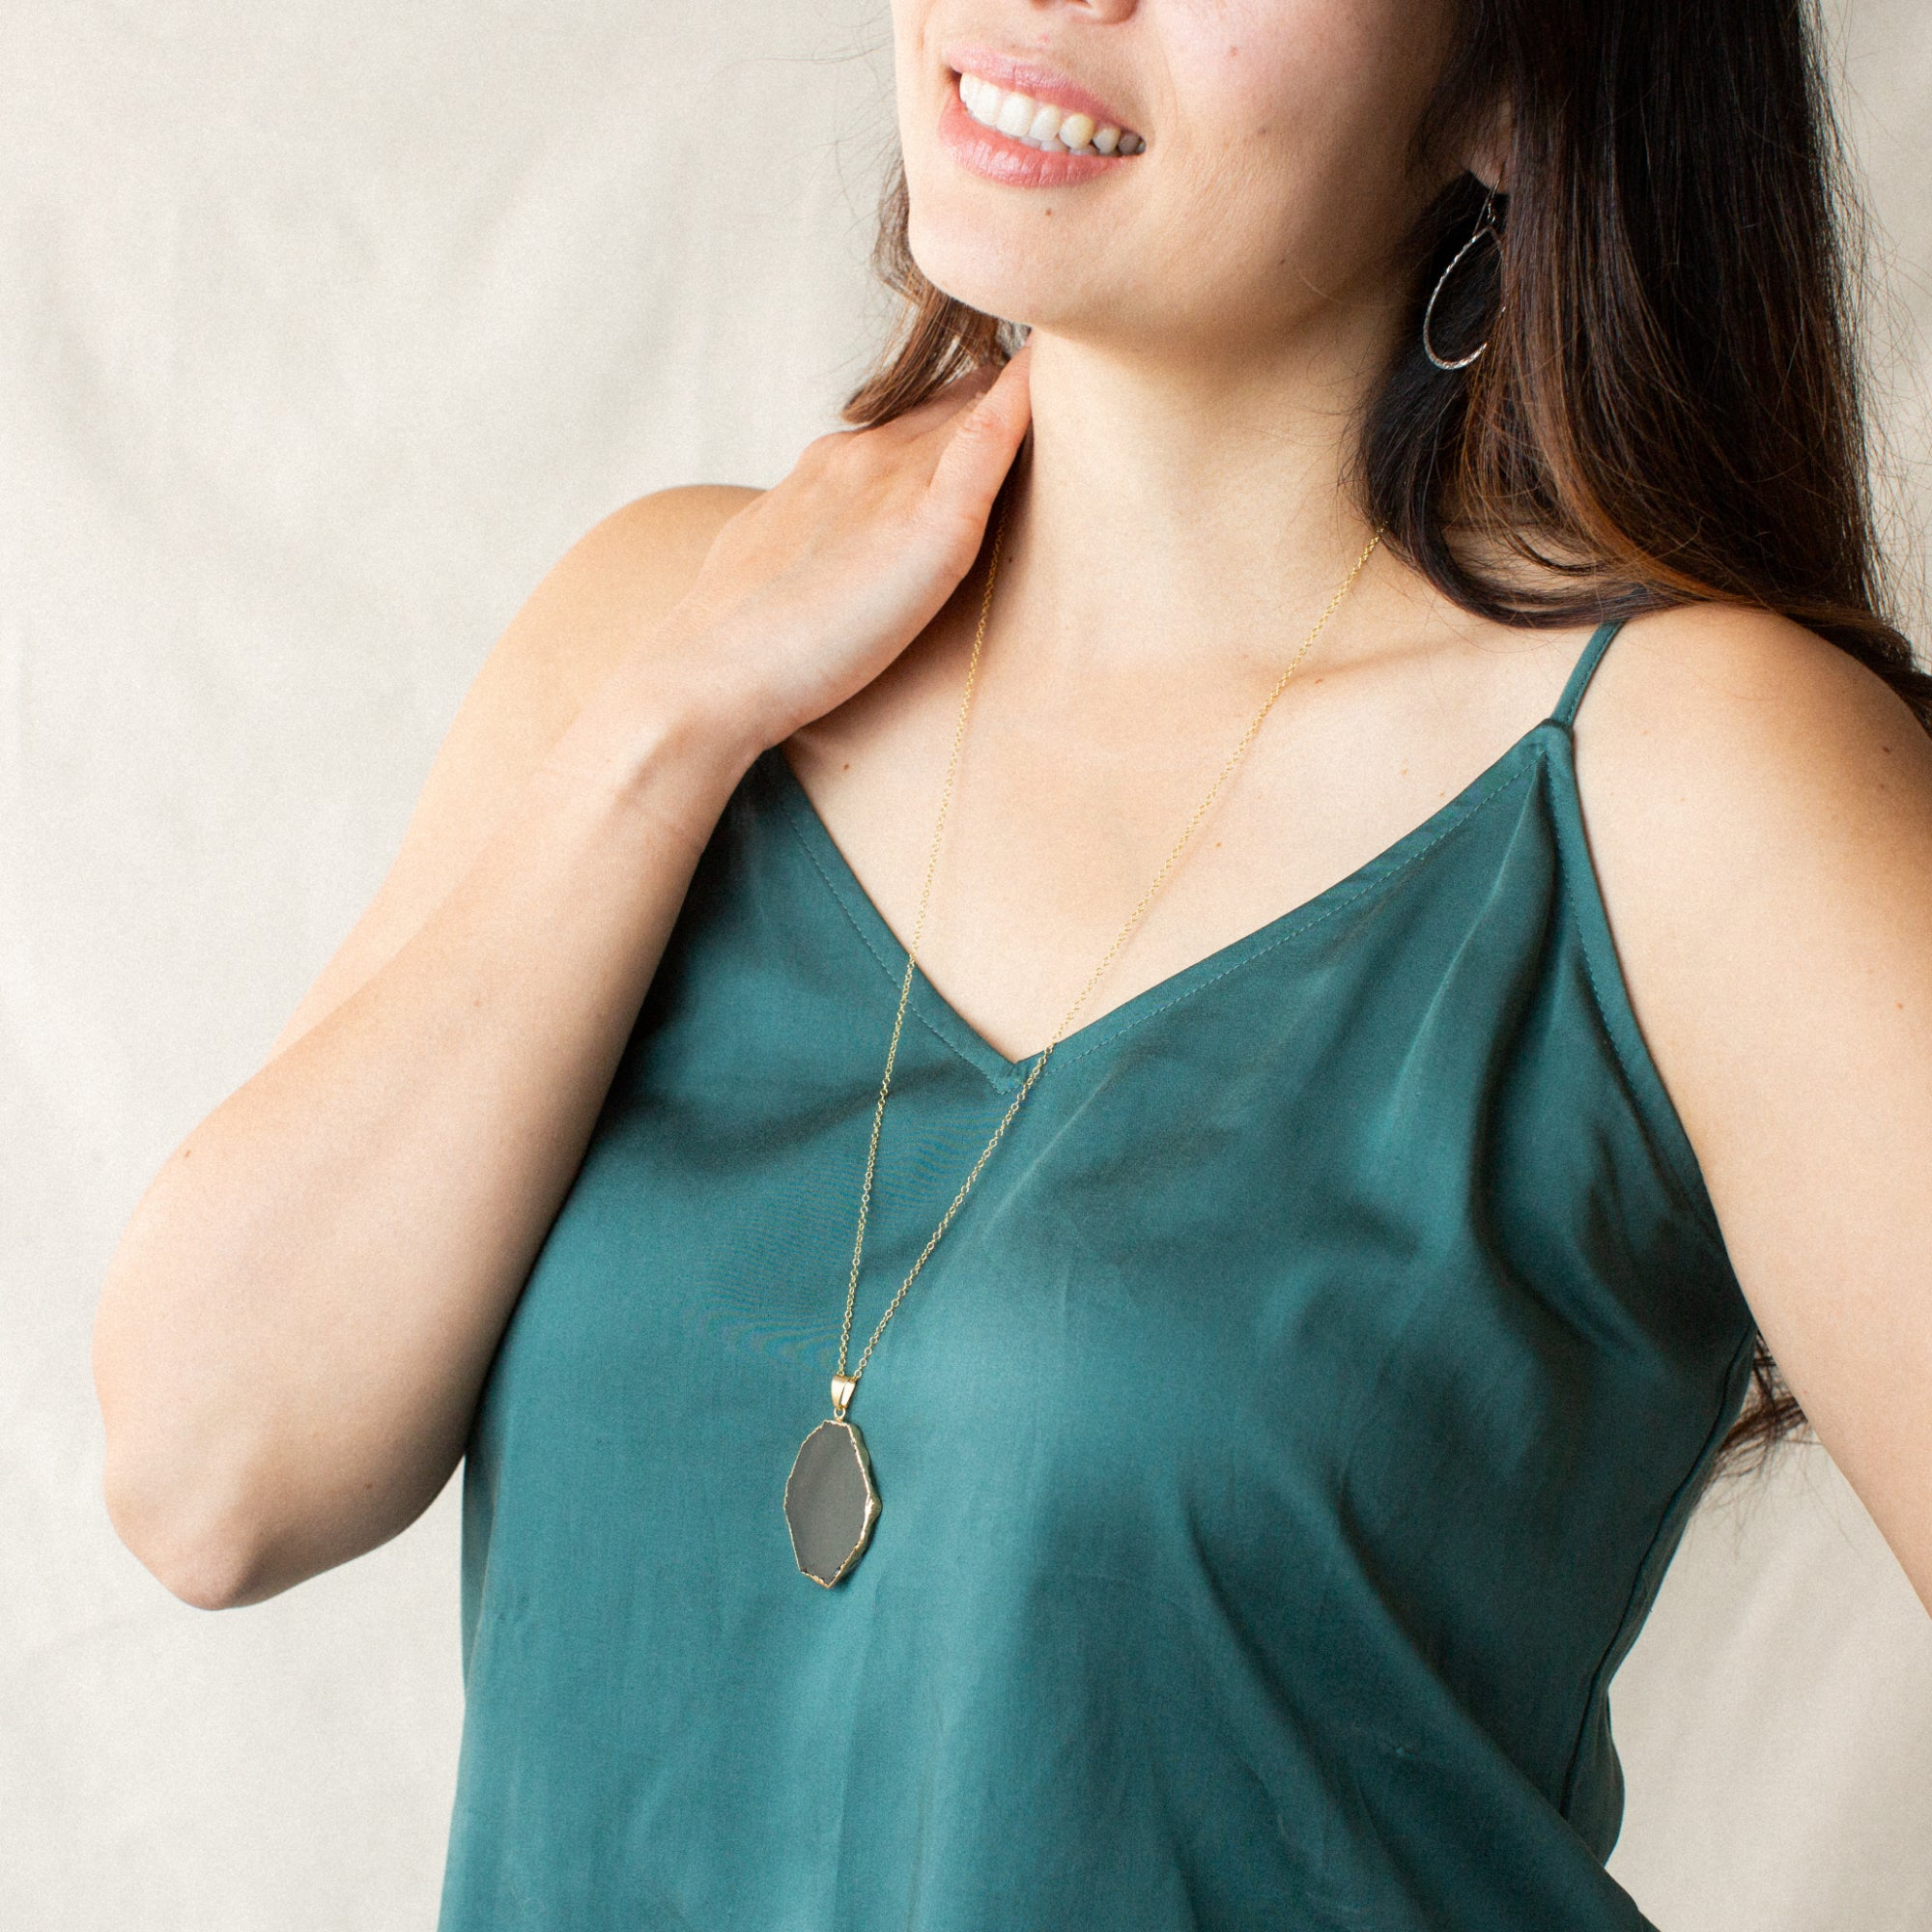 Womean in Green Shirt Smiling and Wearing Slice-shaped Smoky Quartz and Gold Long Necklace 'I Am Brave' Model Photo by Asha Blooms